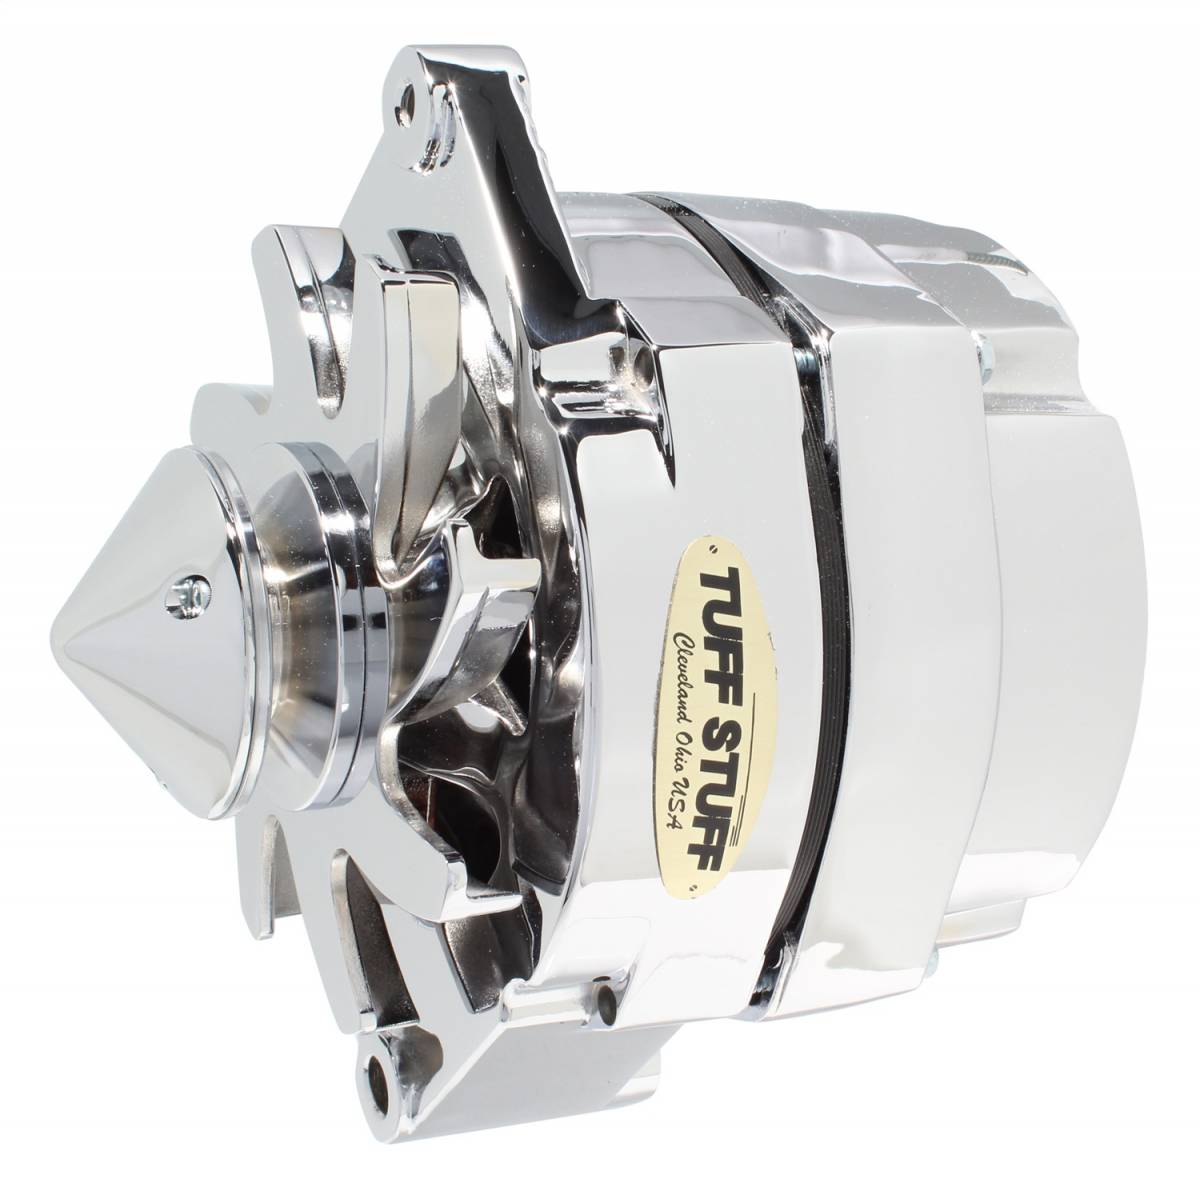 Tuff Stuff Performance - Silver Bullet Alternator 100 AMP OEM Or 1 Wire V Groove Bullet Pulley 4.85 in. Case Depth Lower Mount Boss 2 in. Long Polished 6 Clocking 7139BBULL6